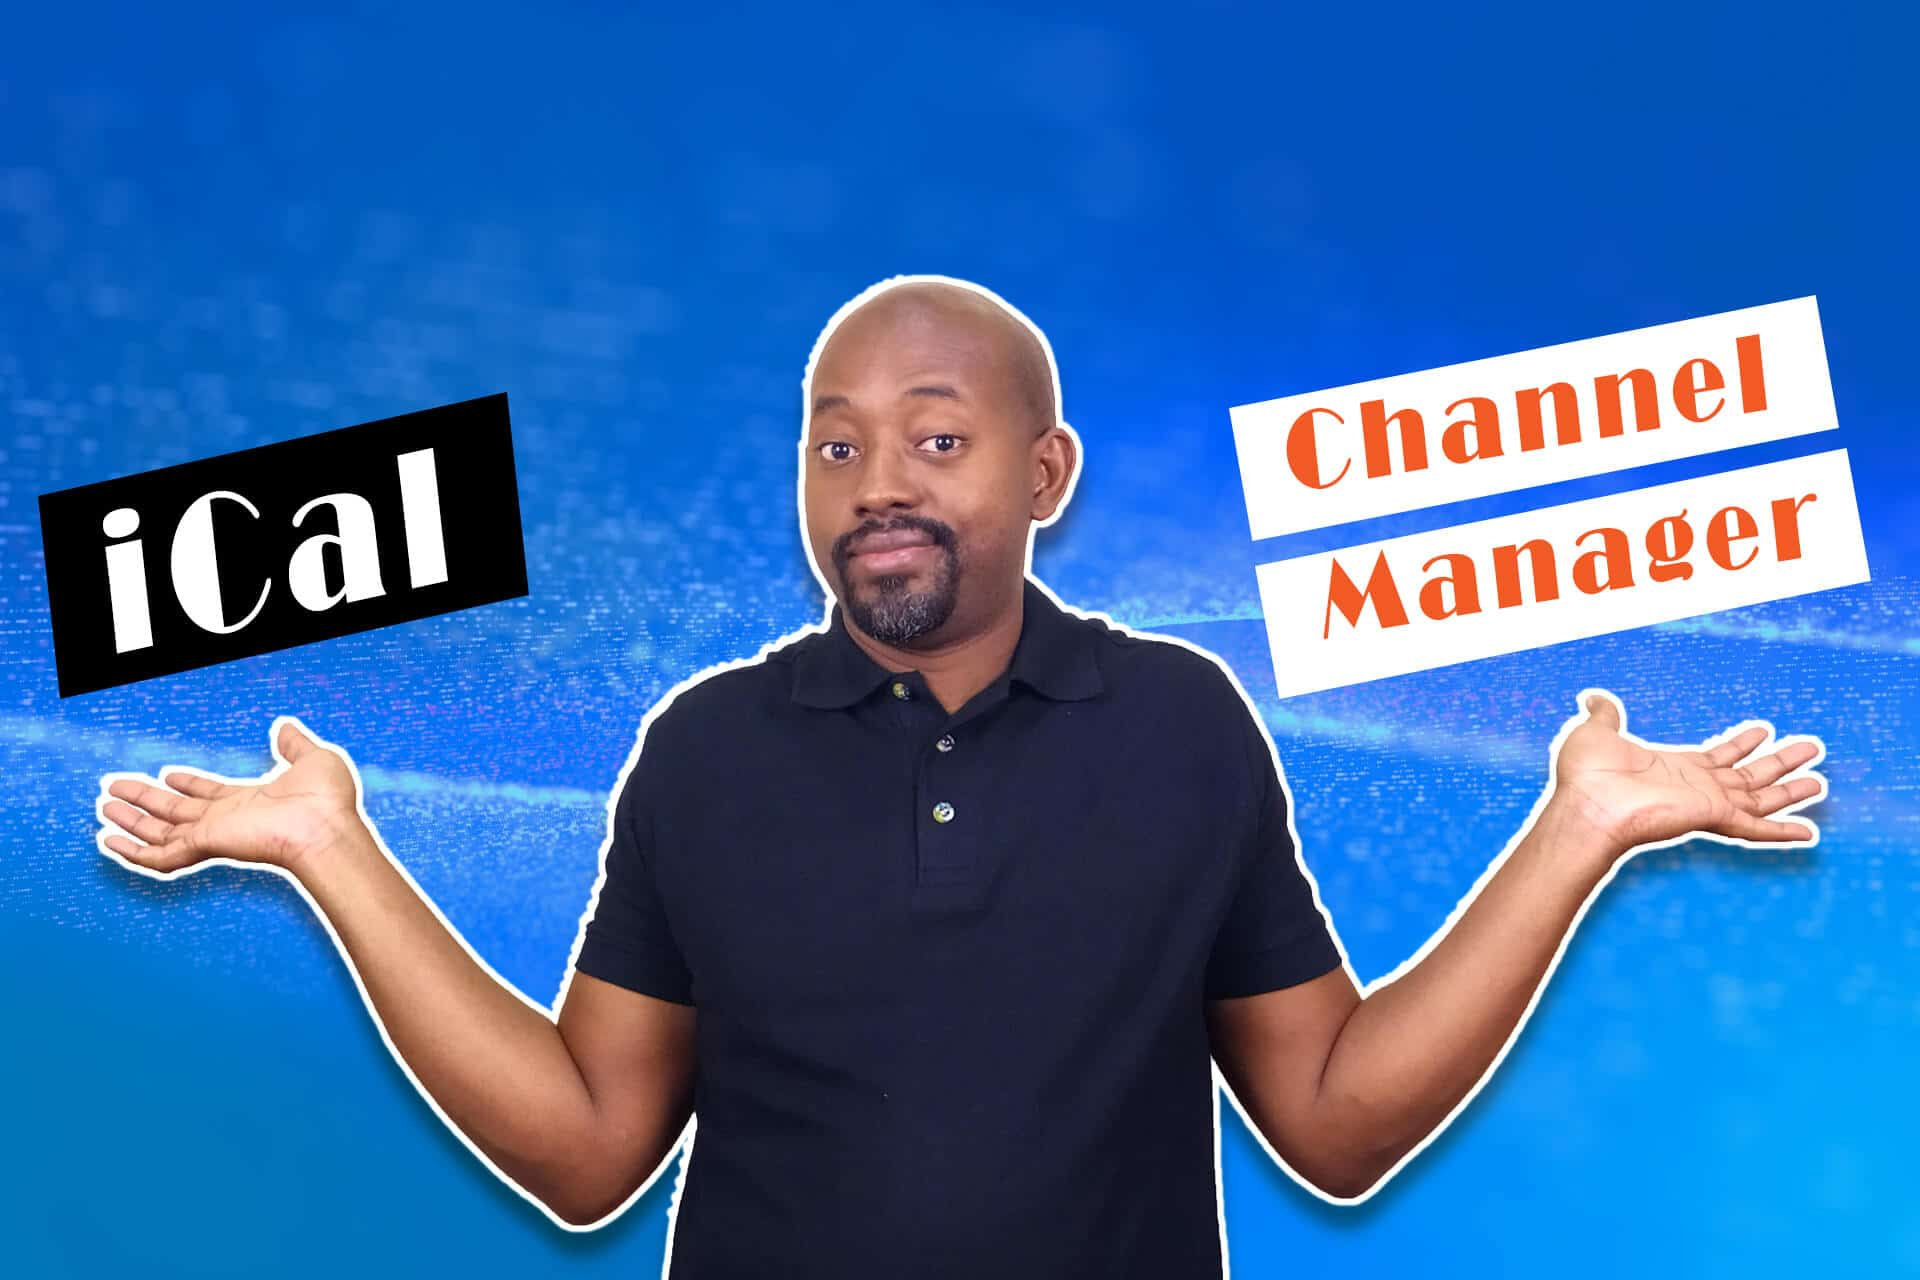 iCal or Channel Manager to avoid overbooking your hotel or bed and breakfast